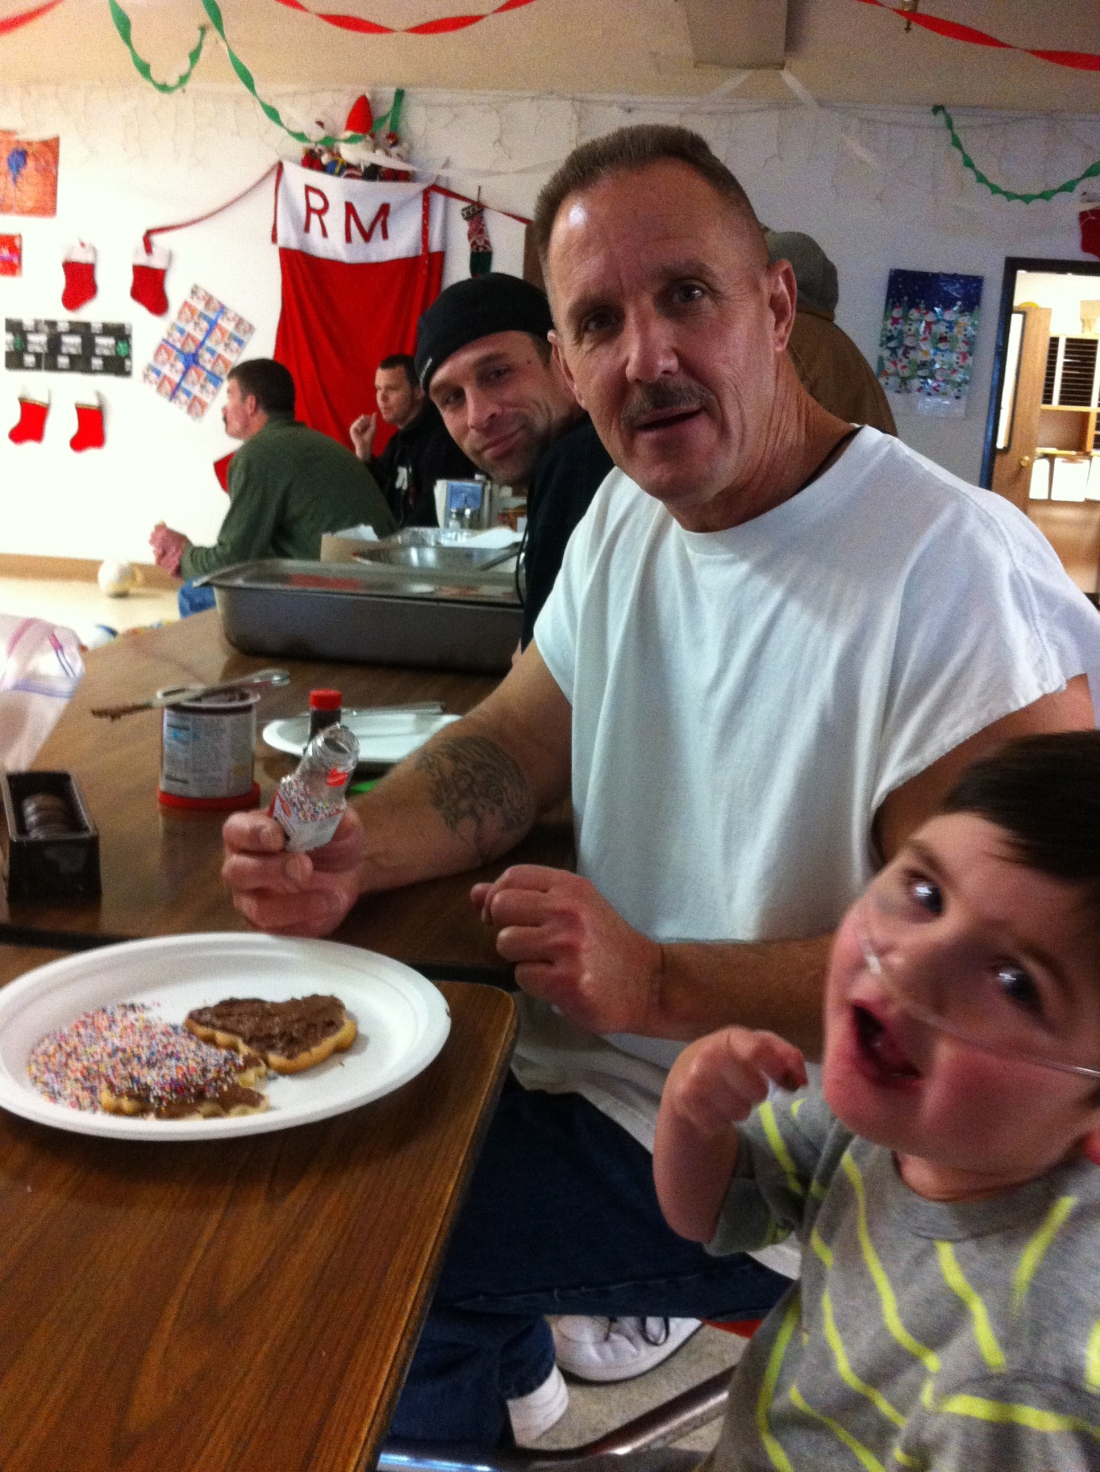 Rudy and friends decorating Christmas cookies at the Rescue Mission.